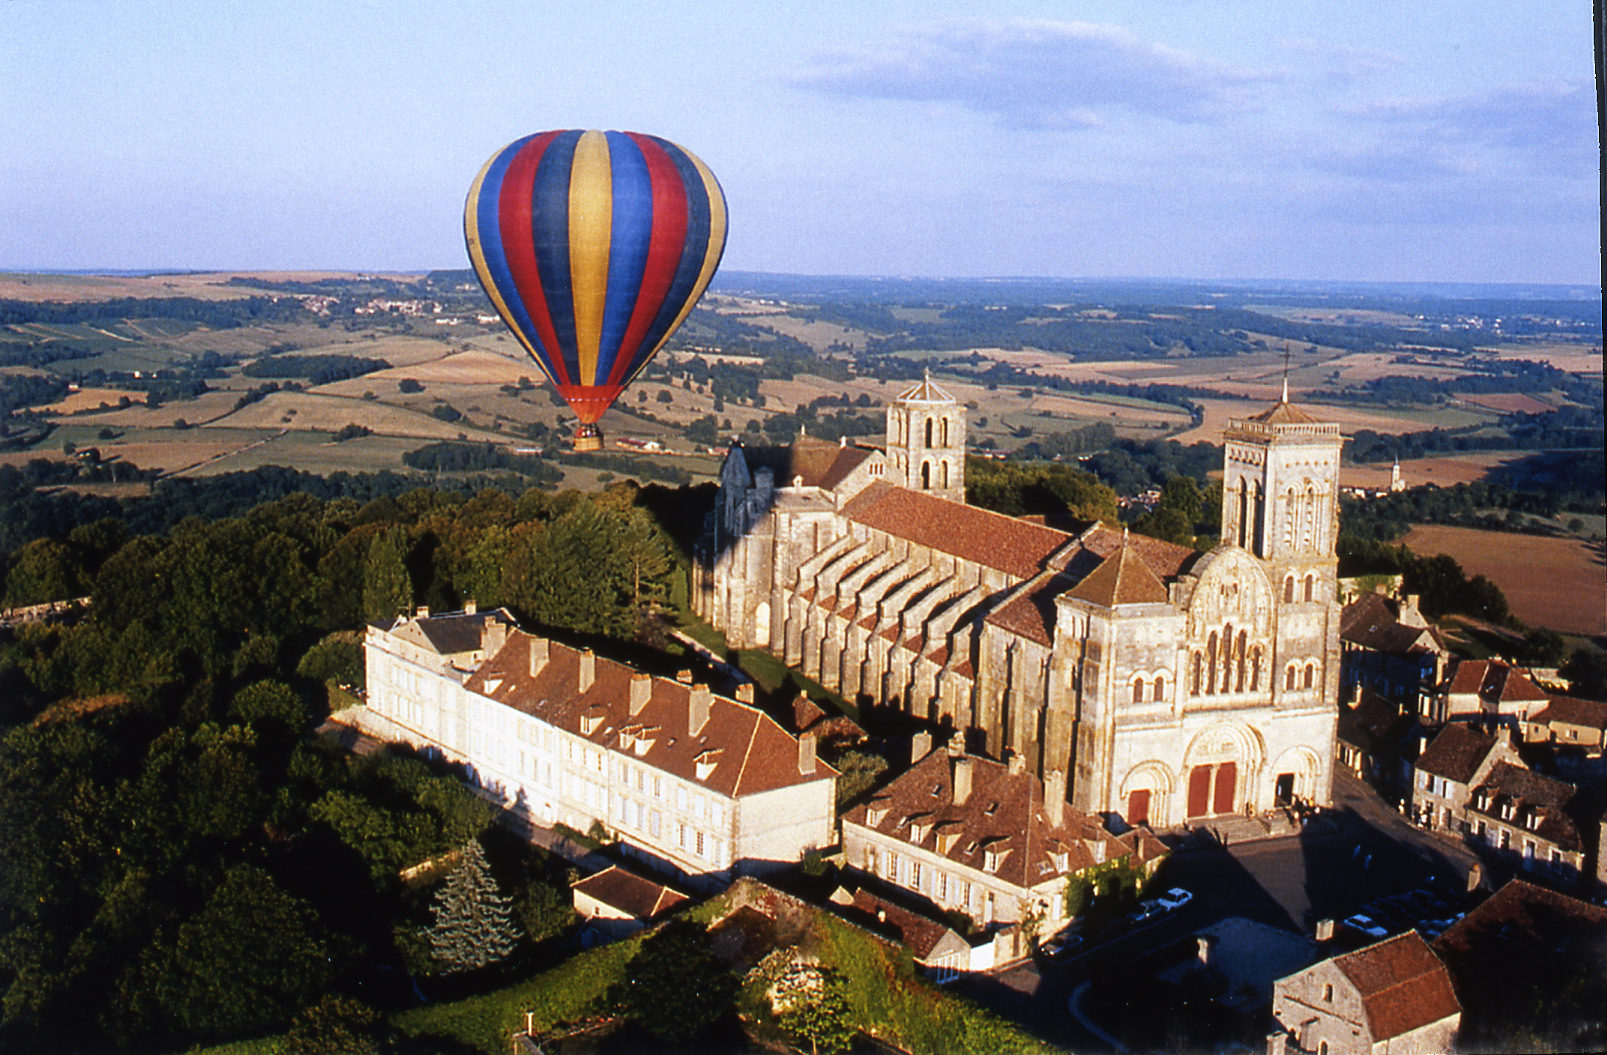 Fly over Vézelay